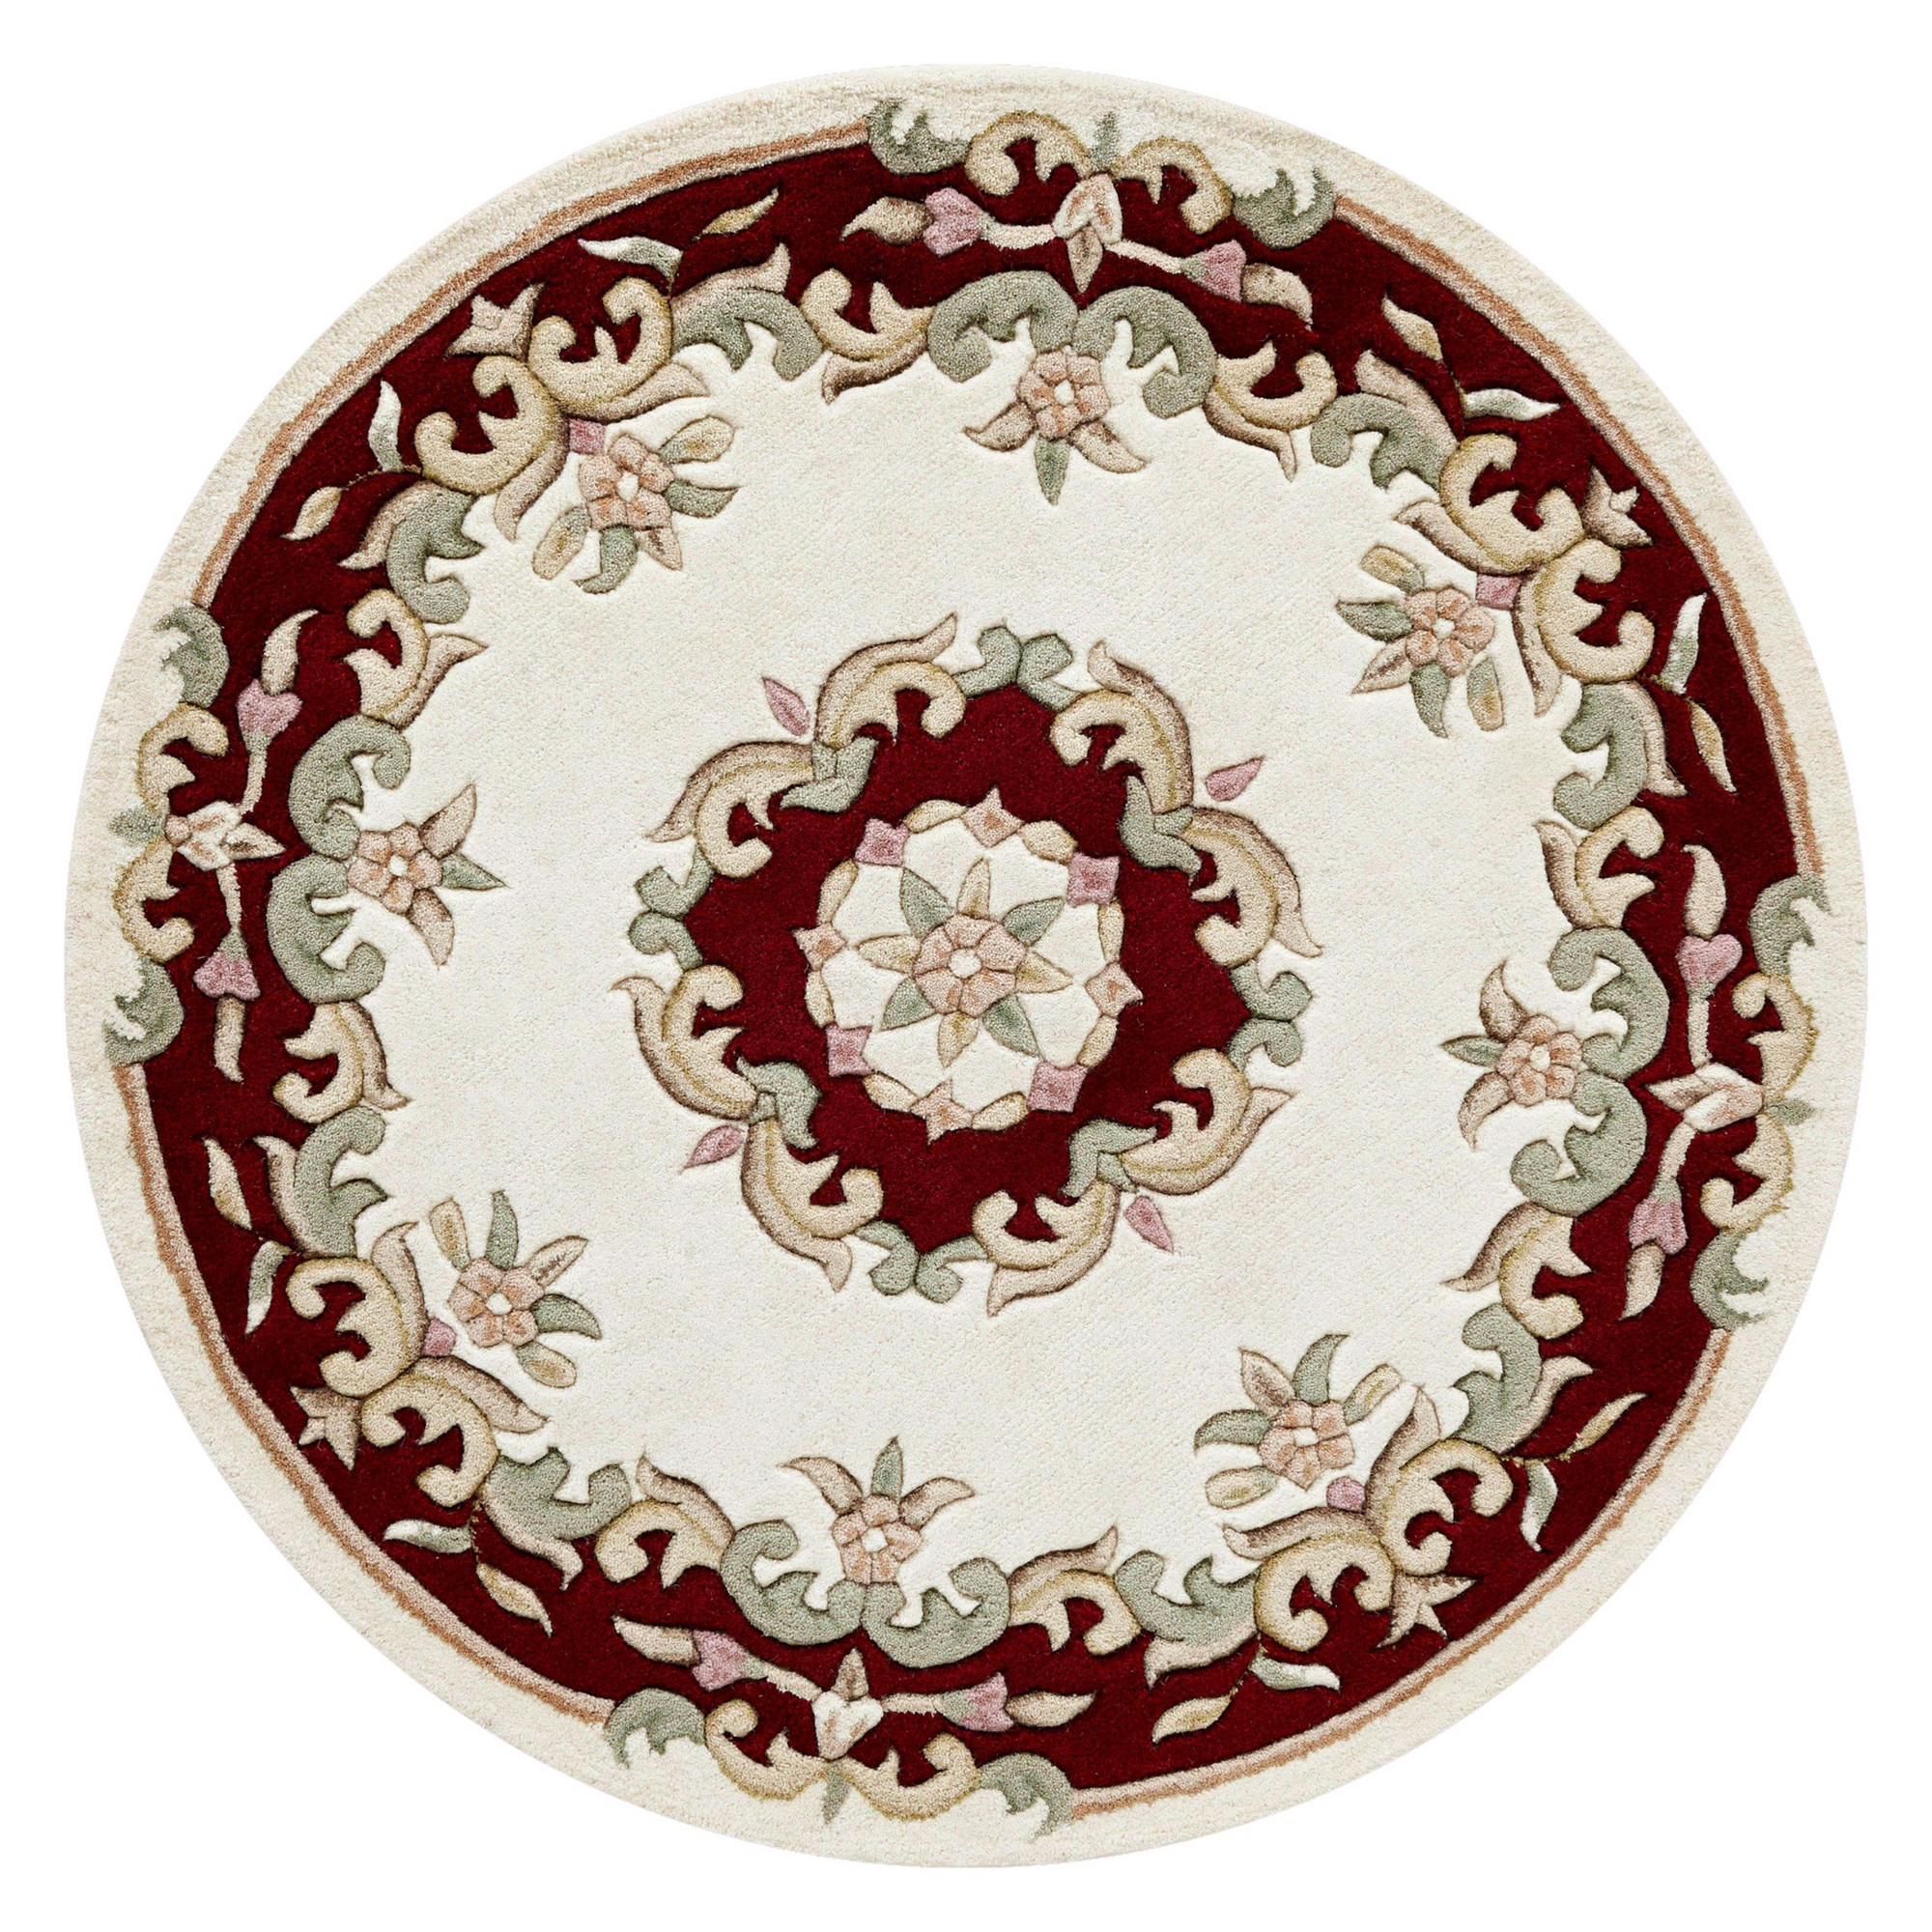 Royal Aubusson Circular Rugs in Cream Red